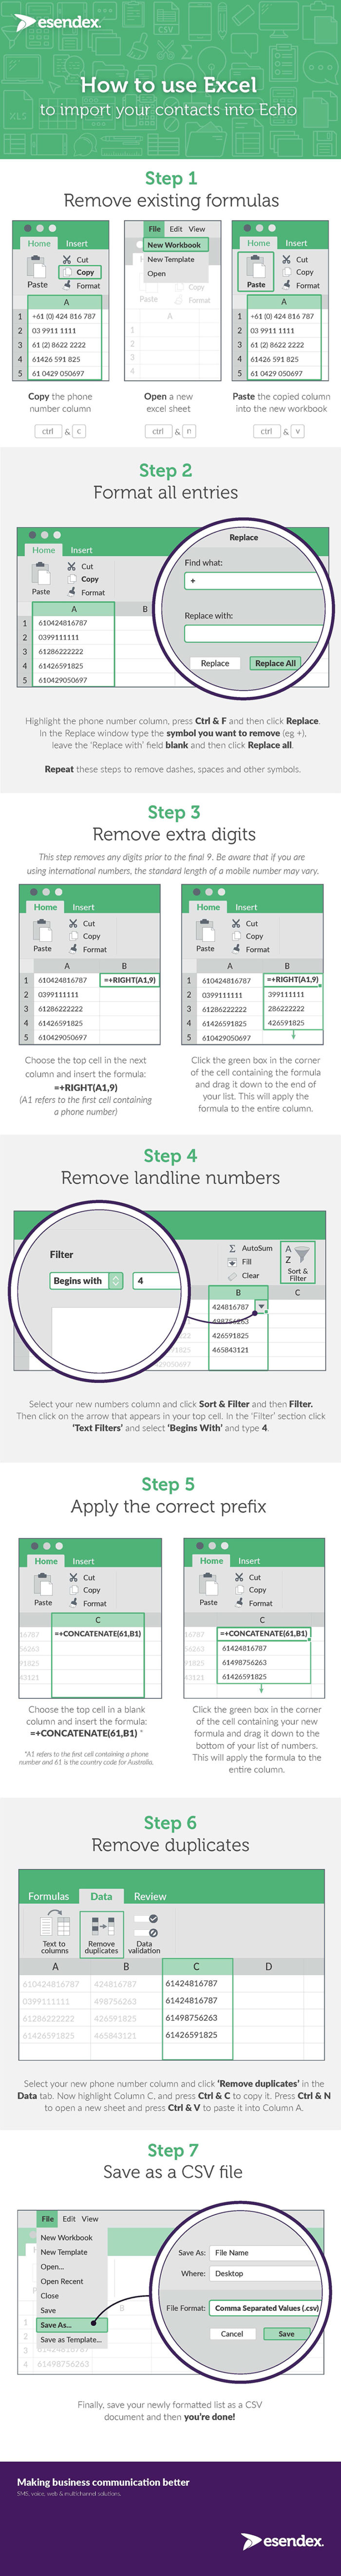 How to clean and reformat telephone numbers in Excel [Infographic] |  Esendex Blog